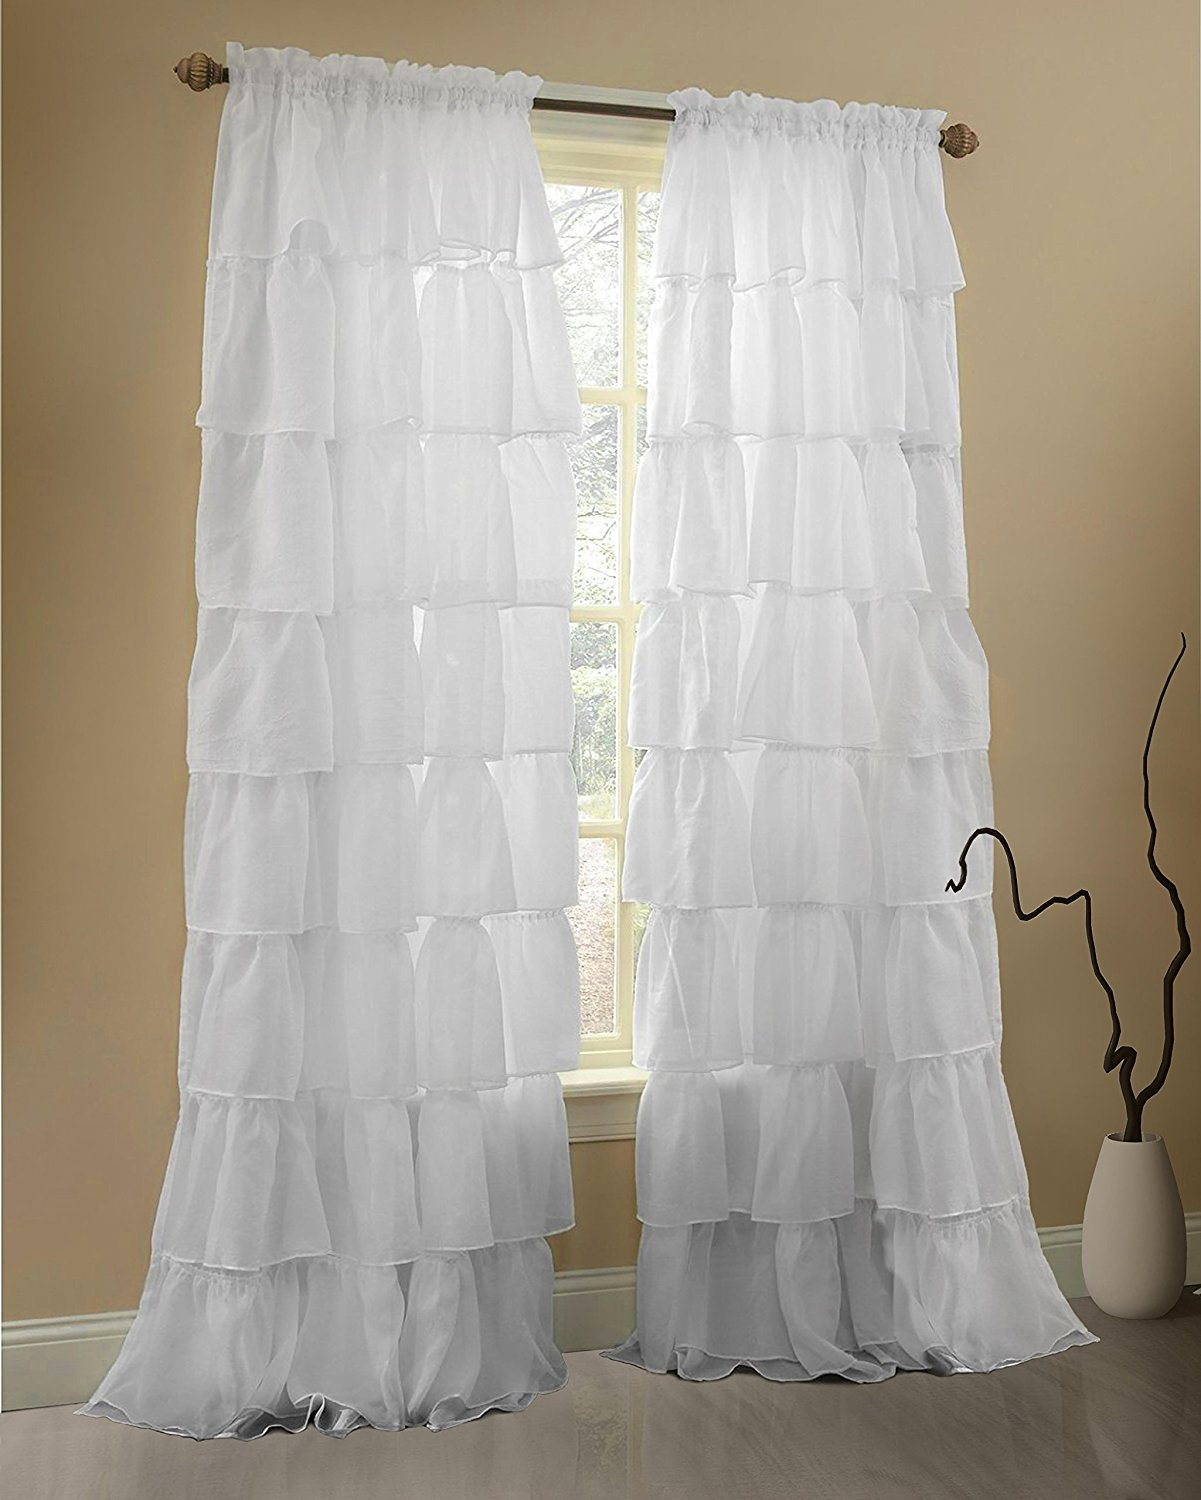 Ruffle Blackout Curtains | Turquoise Ruffle Curtains | Blackout Curtains for Nursery